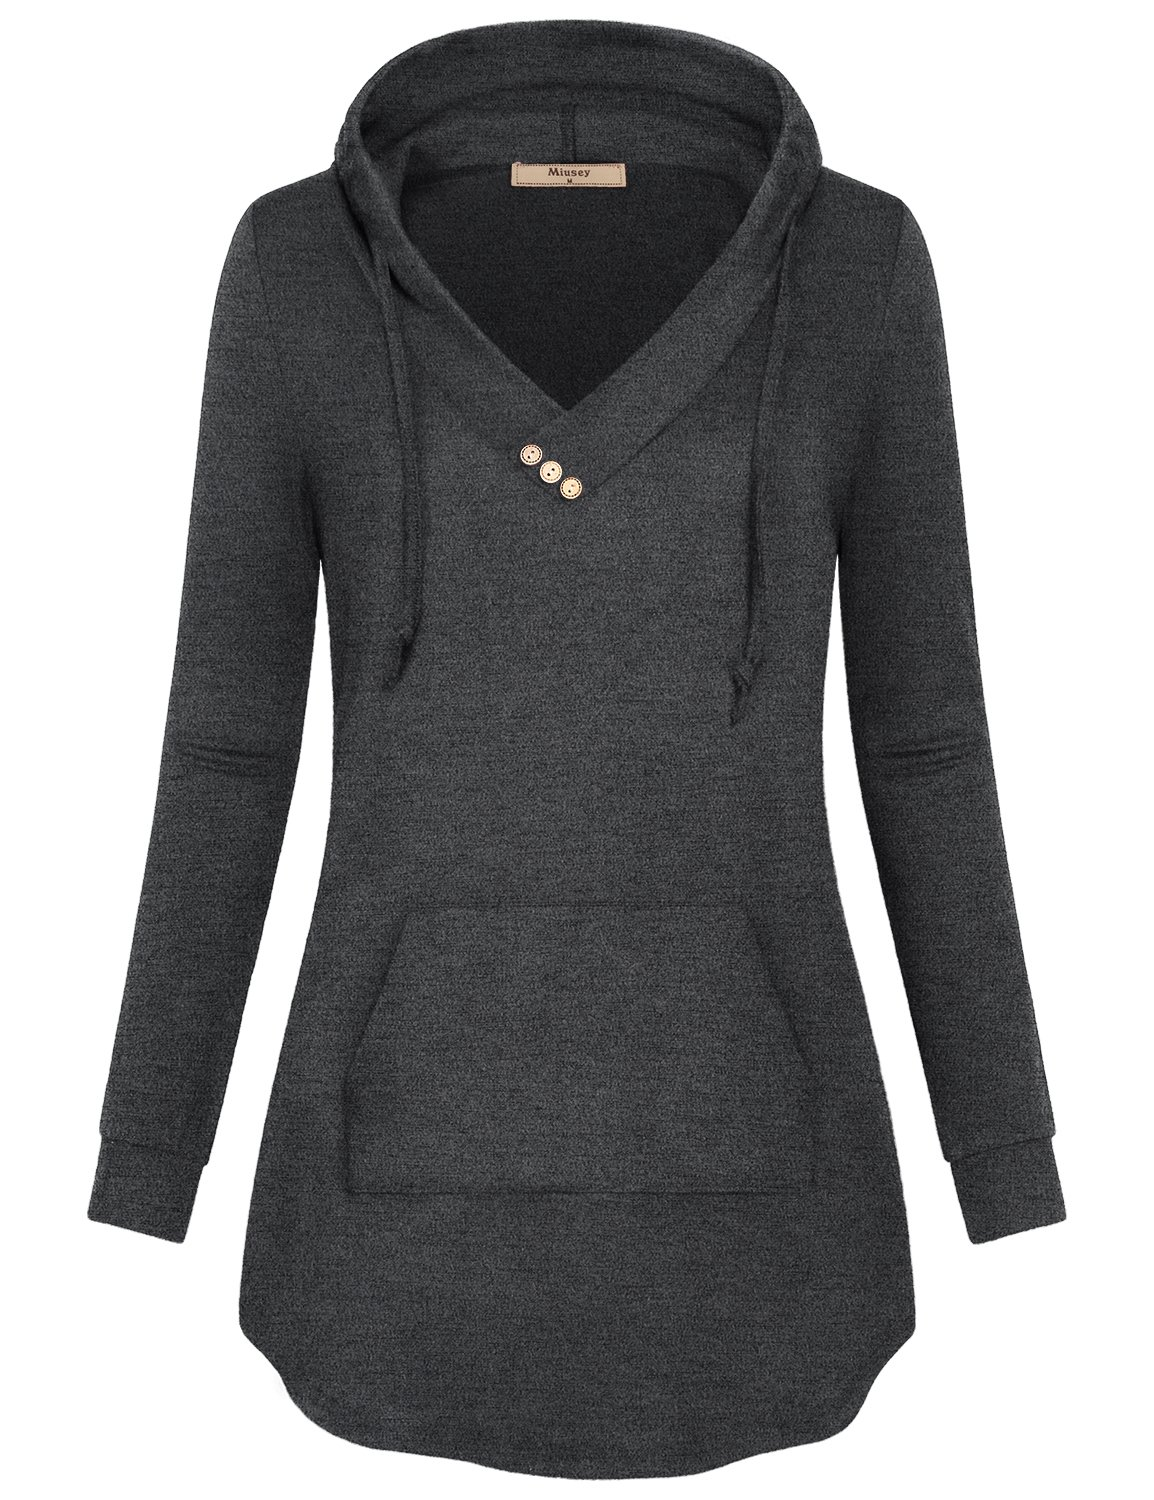 Plain Hoodie,Miusey Women V Neck Knit Sweater Blusas Elegantes Athleisure Travel Semi Formal Top Breathable Clothes Fashion Blousy Tops Different Carbon Sweet Sweat Shirt with Pleats Charcoal Black L